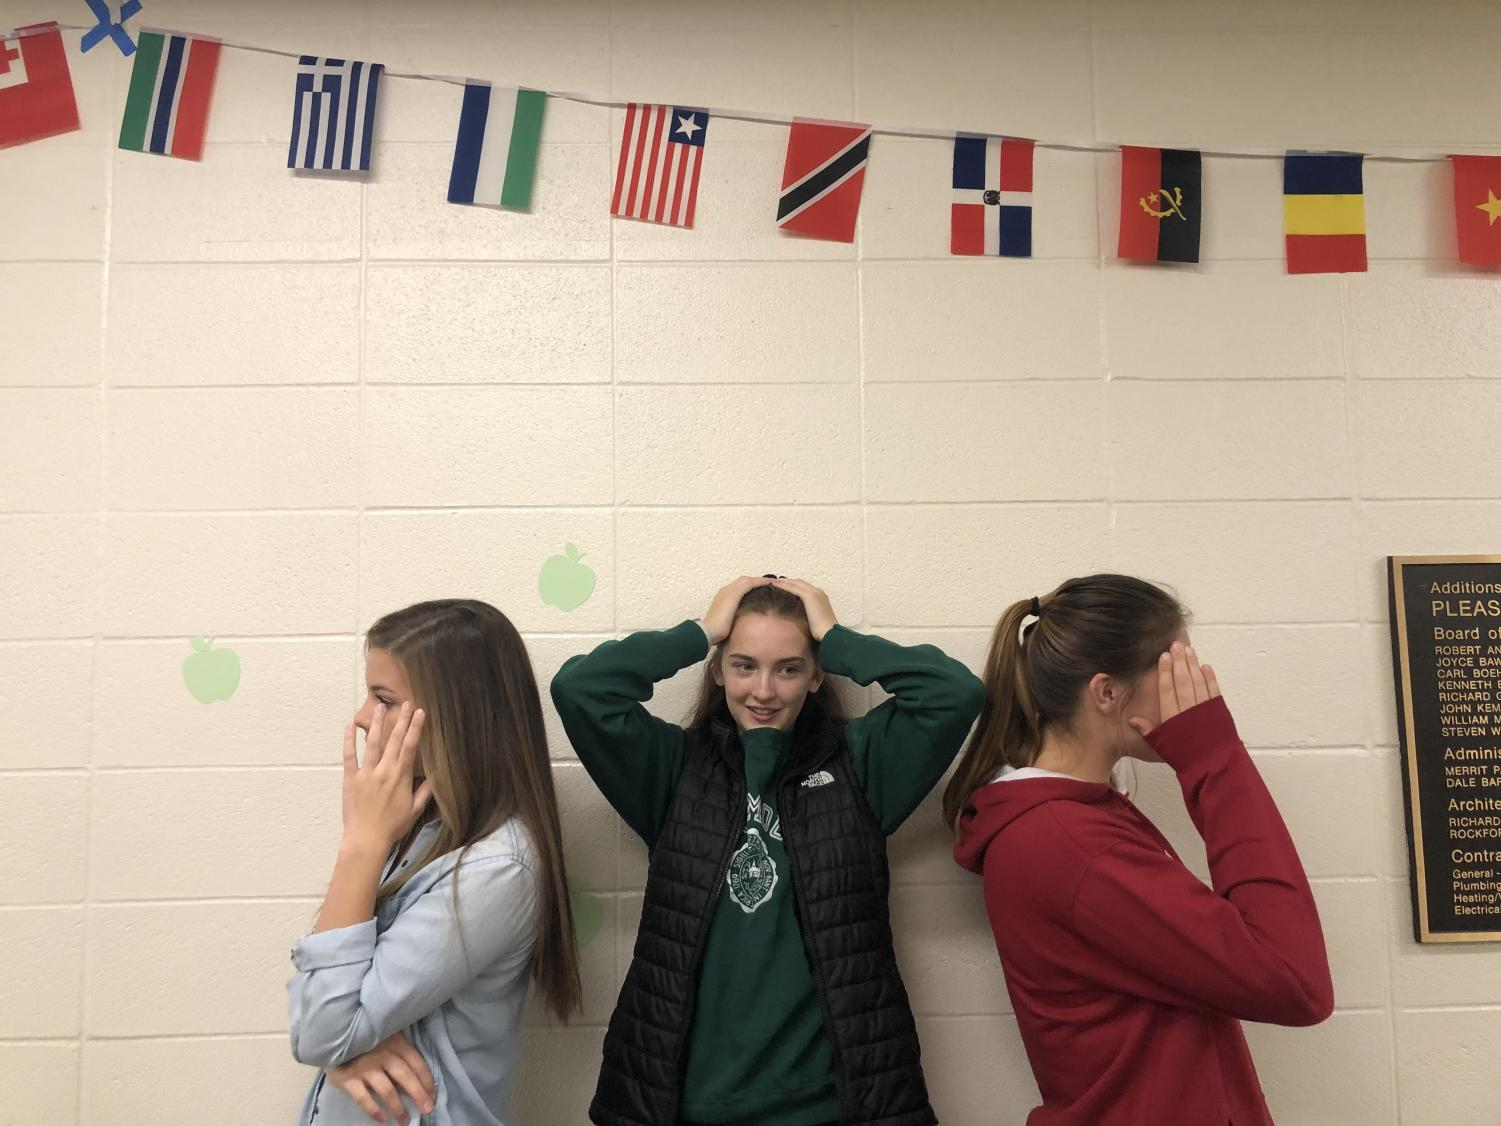 Grace Halupnik (left), Maddy Licea (center) and Taylor English (right) show frustration in school due to the arguing between different political views.